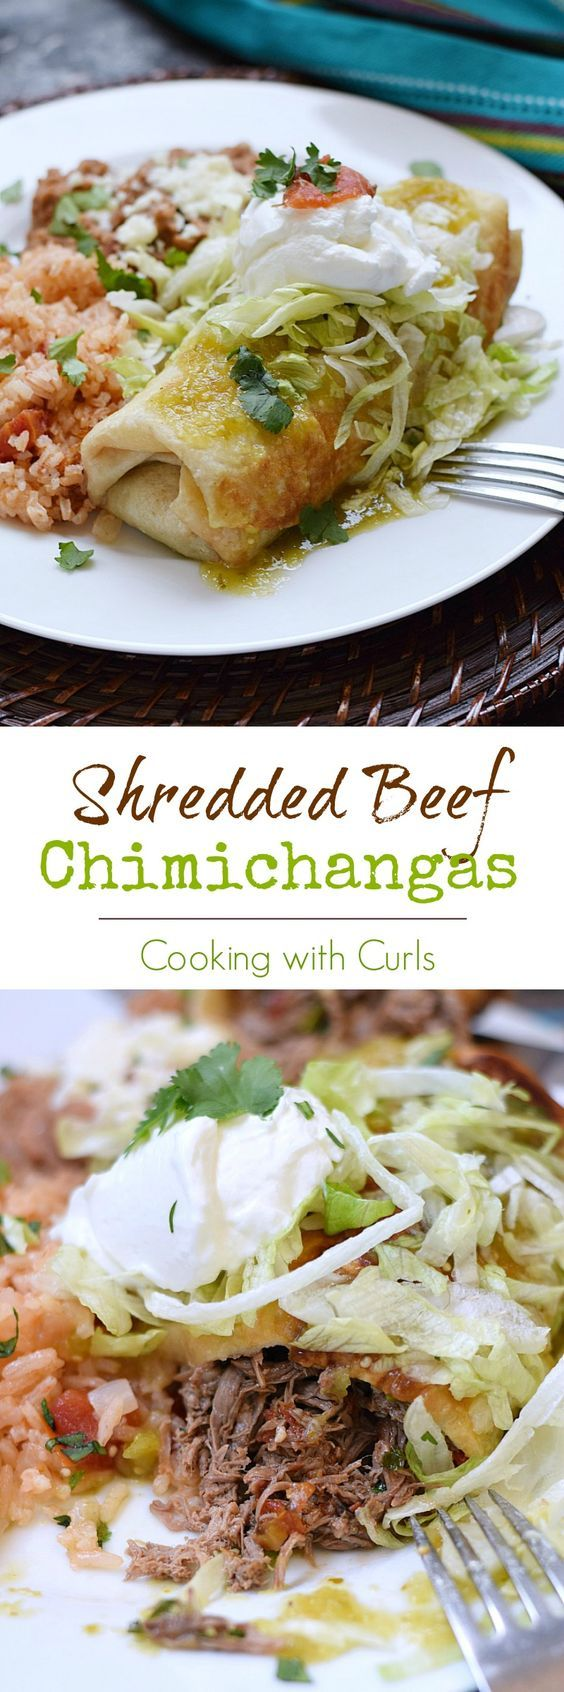 Restaurant quality Shredded Beef Chimichangas that are really easy to make at home and taste amazing   cookingwithcurls.com